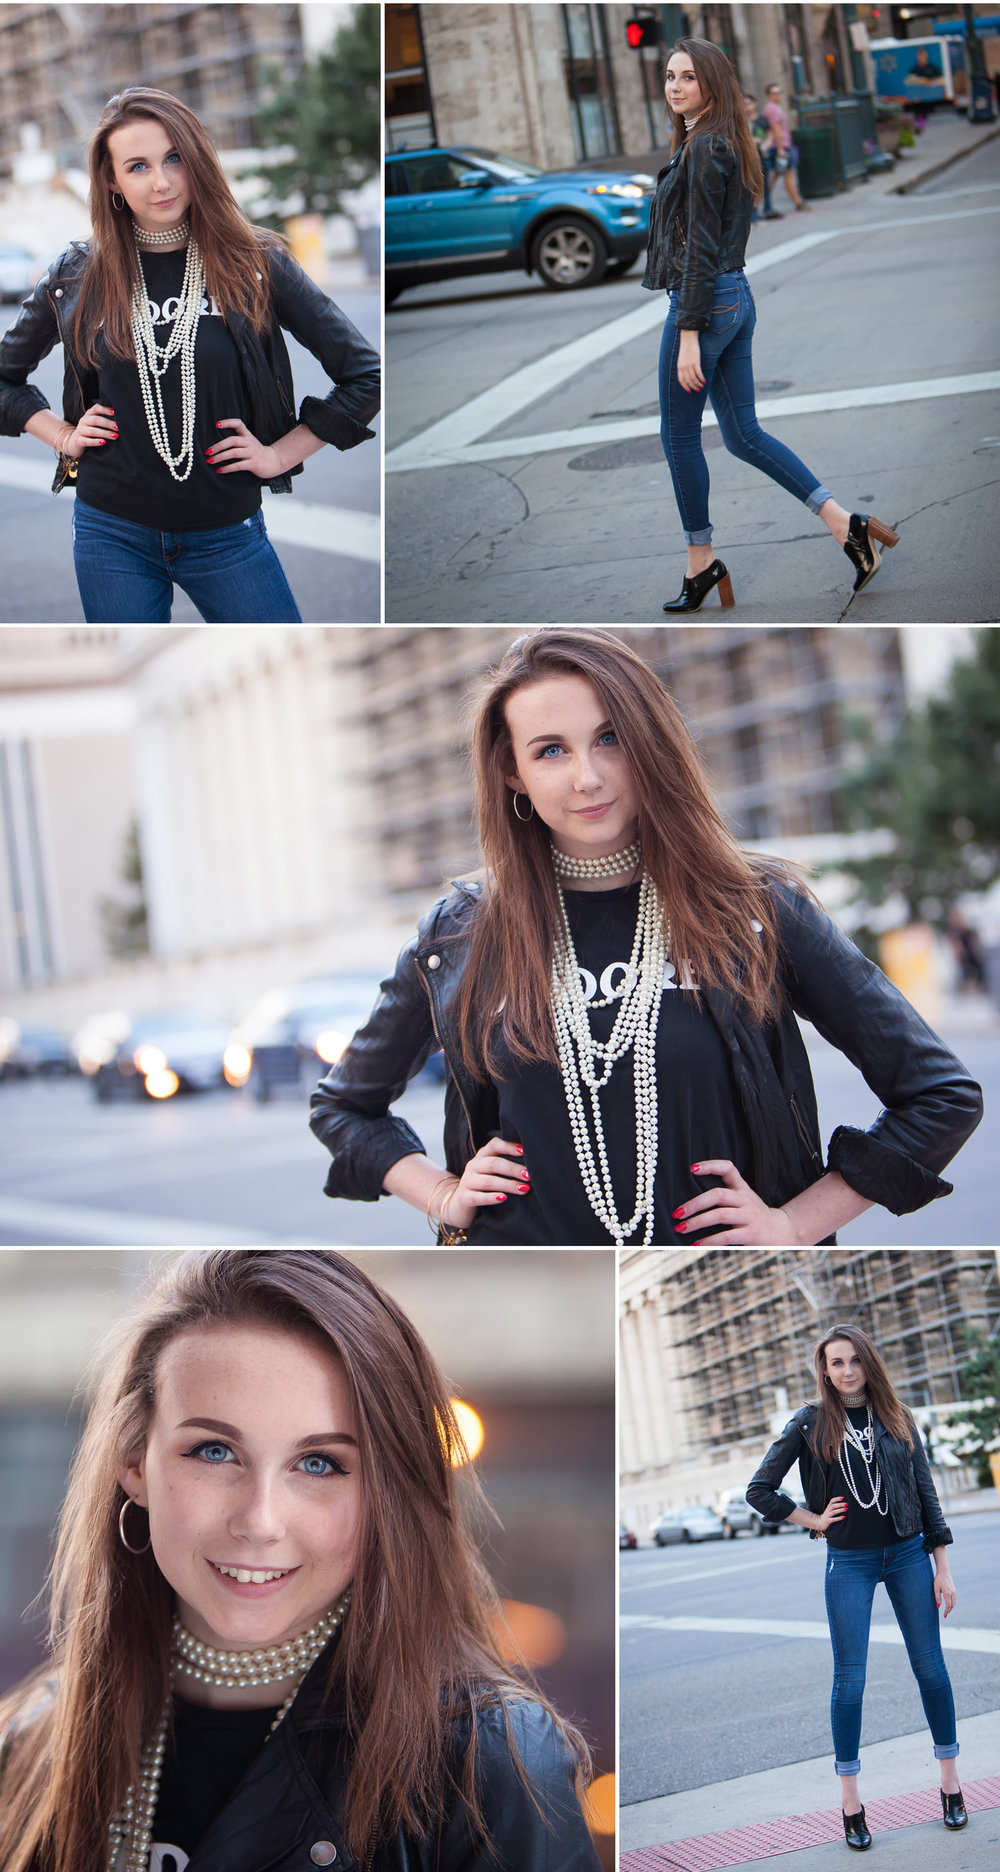 Vibrant, natural urban High School Senior pictures in the streets of downtown Denver with photographer Jennifer Koskinen of Merritt Portrait Studio